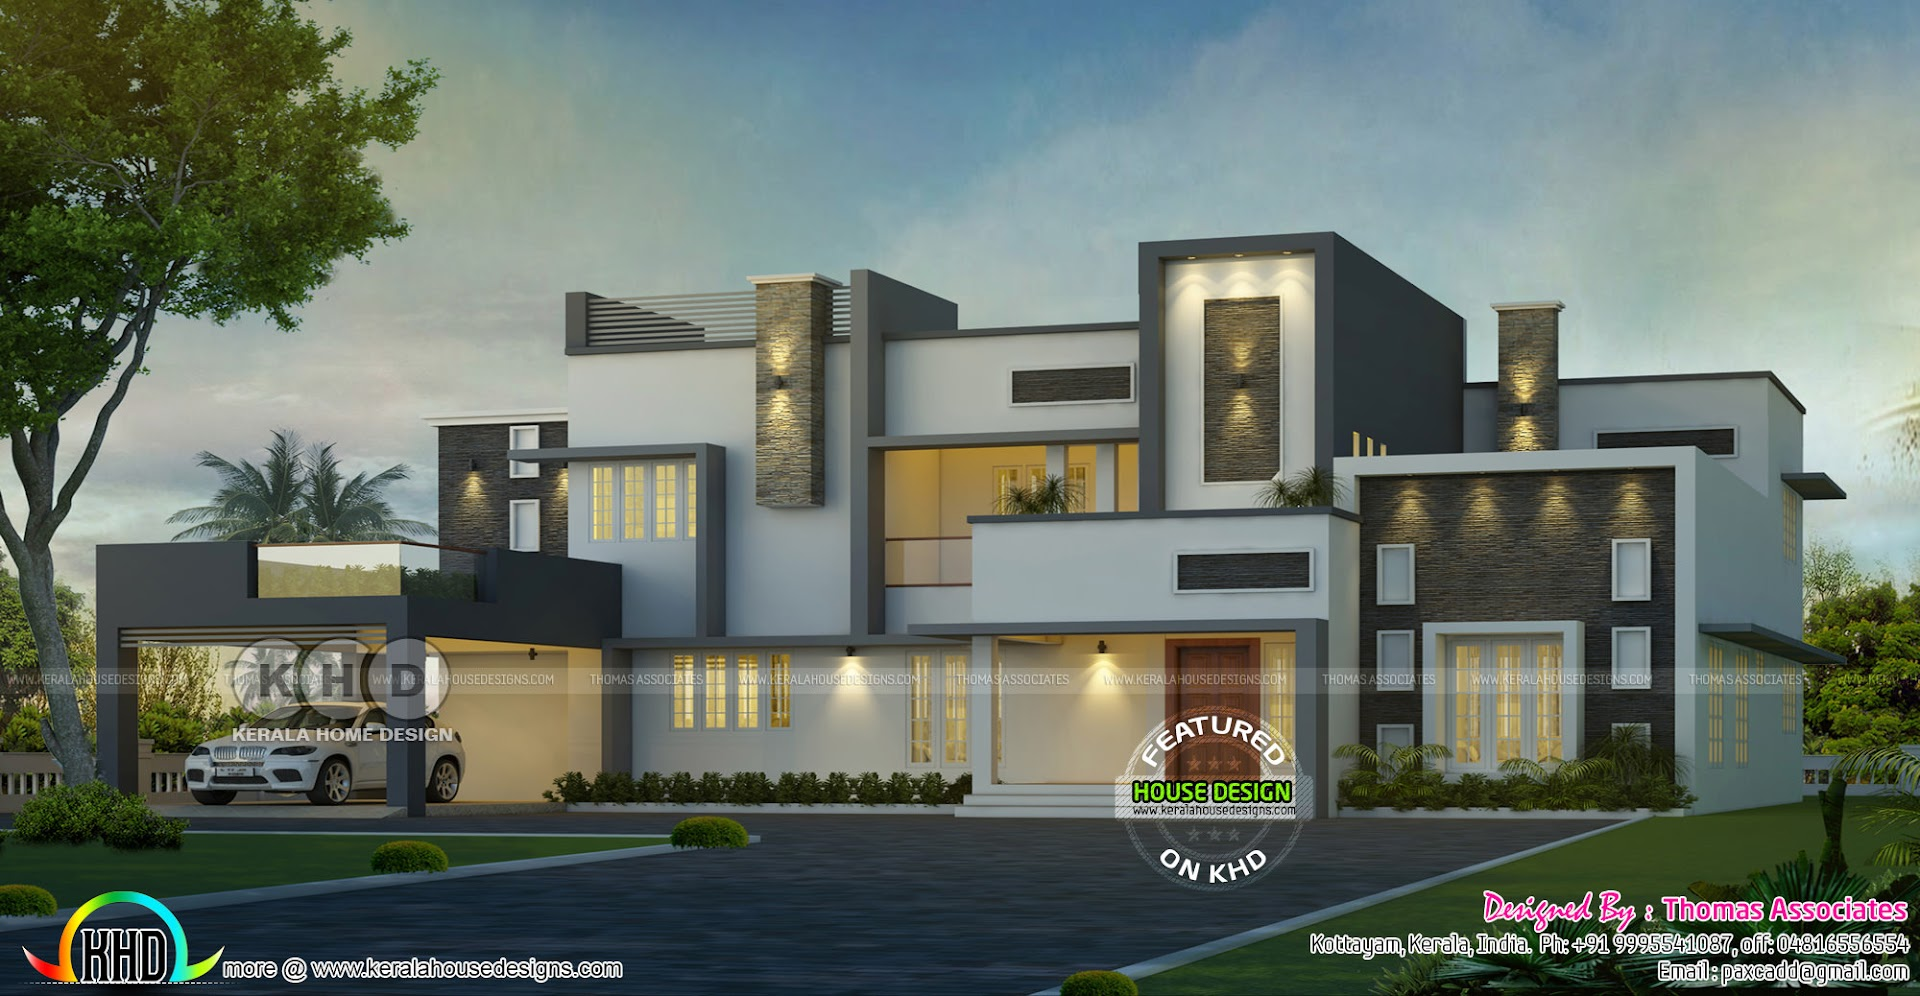 4 bedroom contemporary bungalow home kerala home design for Modern 4 bedroom bungalow house plans